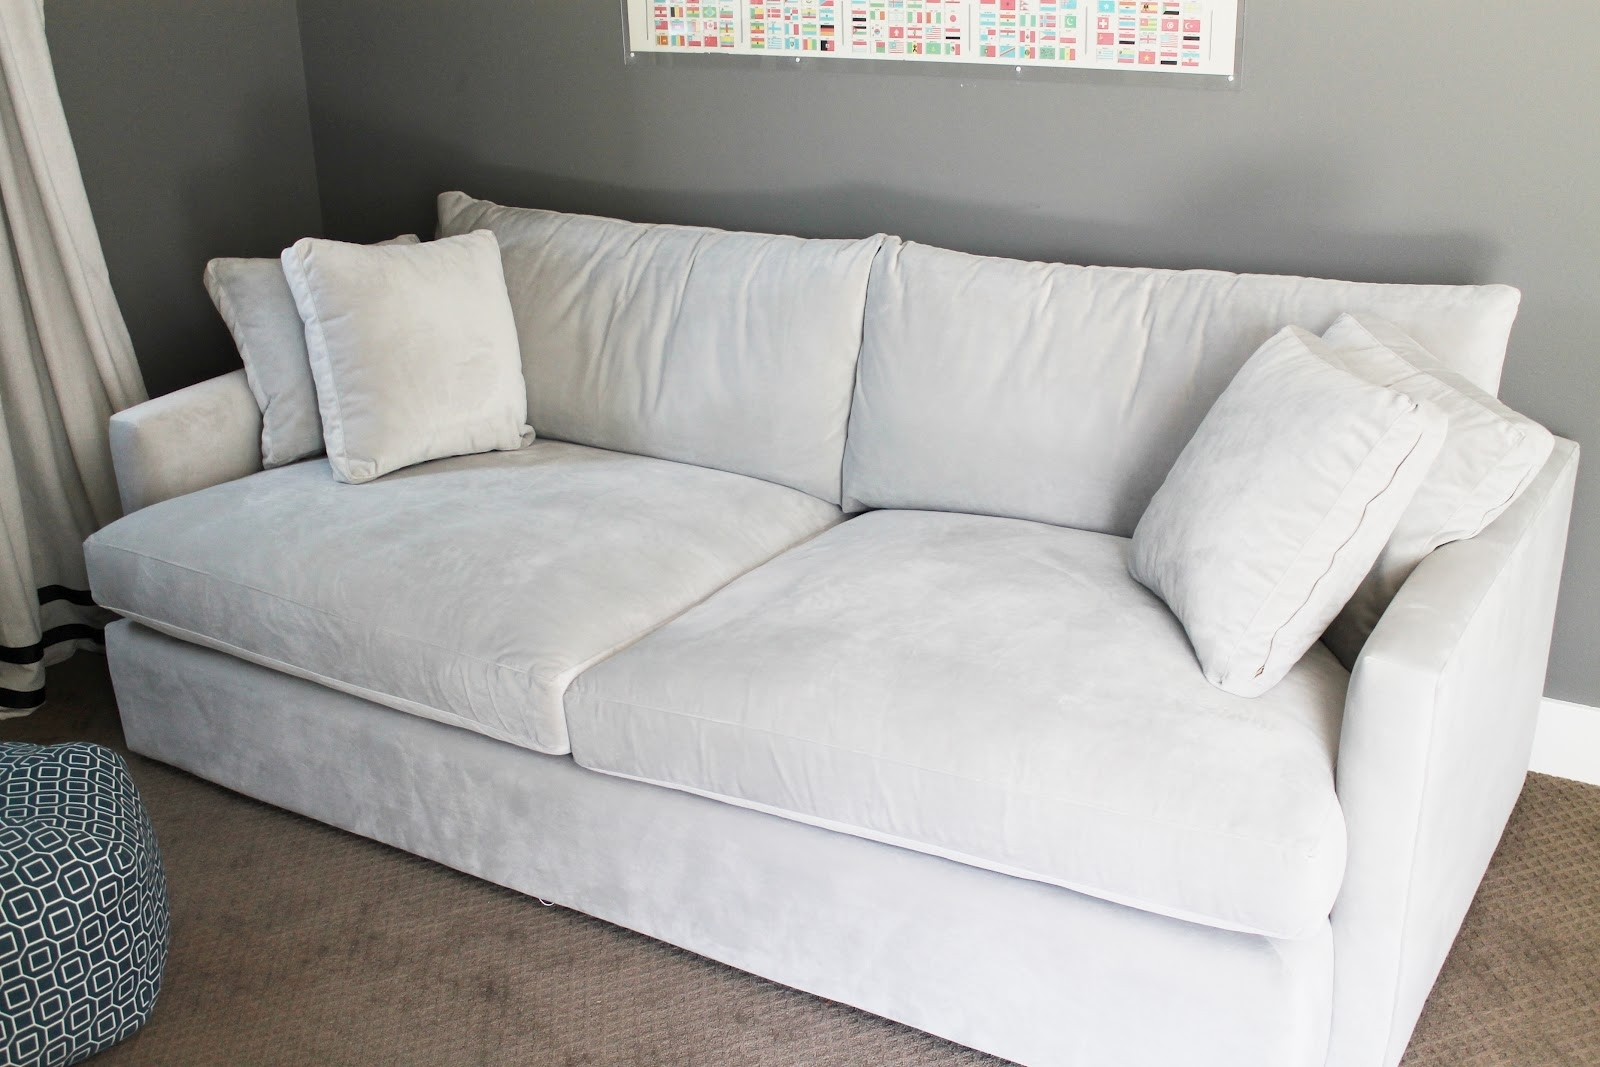 Couch. Wonderful Deep Set Couch: Couch-Set-Which-Is-In-White-Cloth within Deep Cushion Sofas (Image 2 of 10)